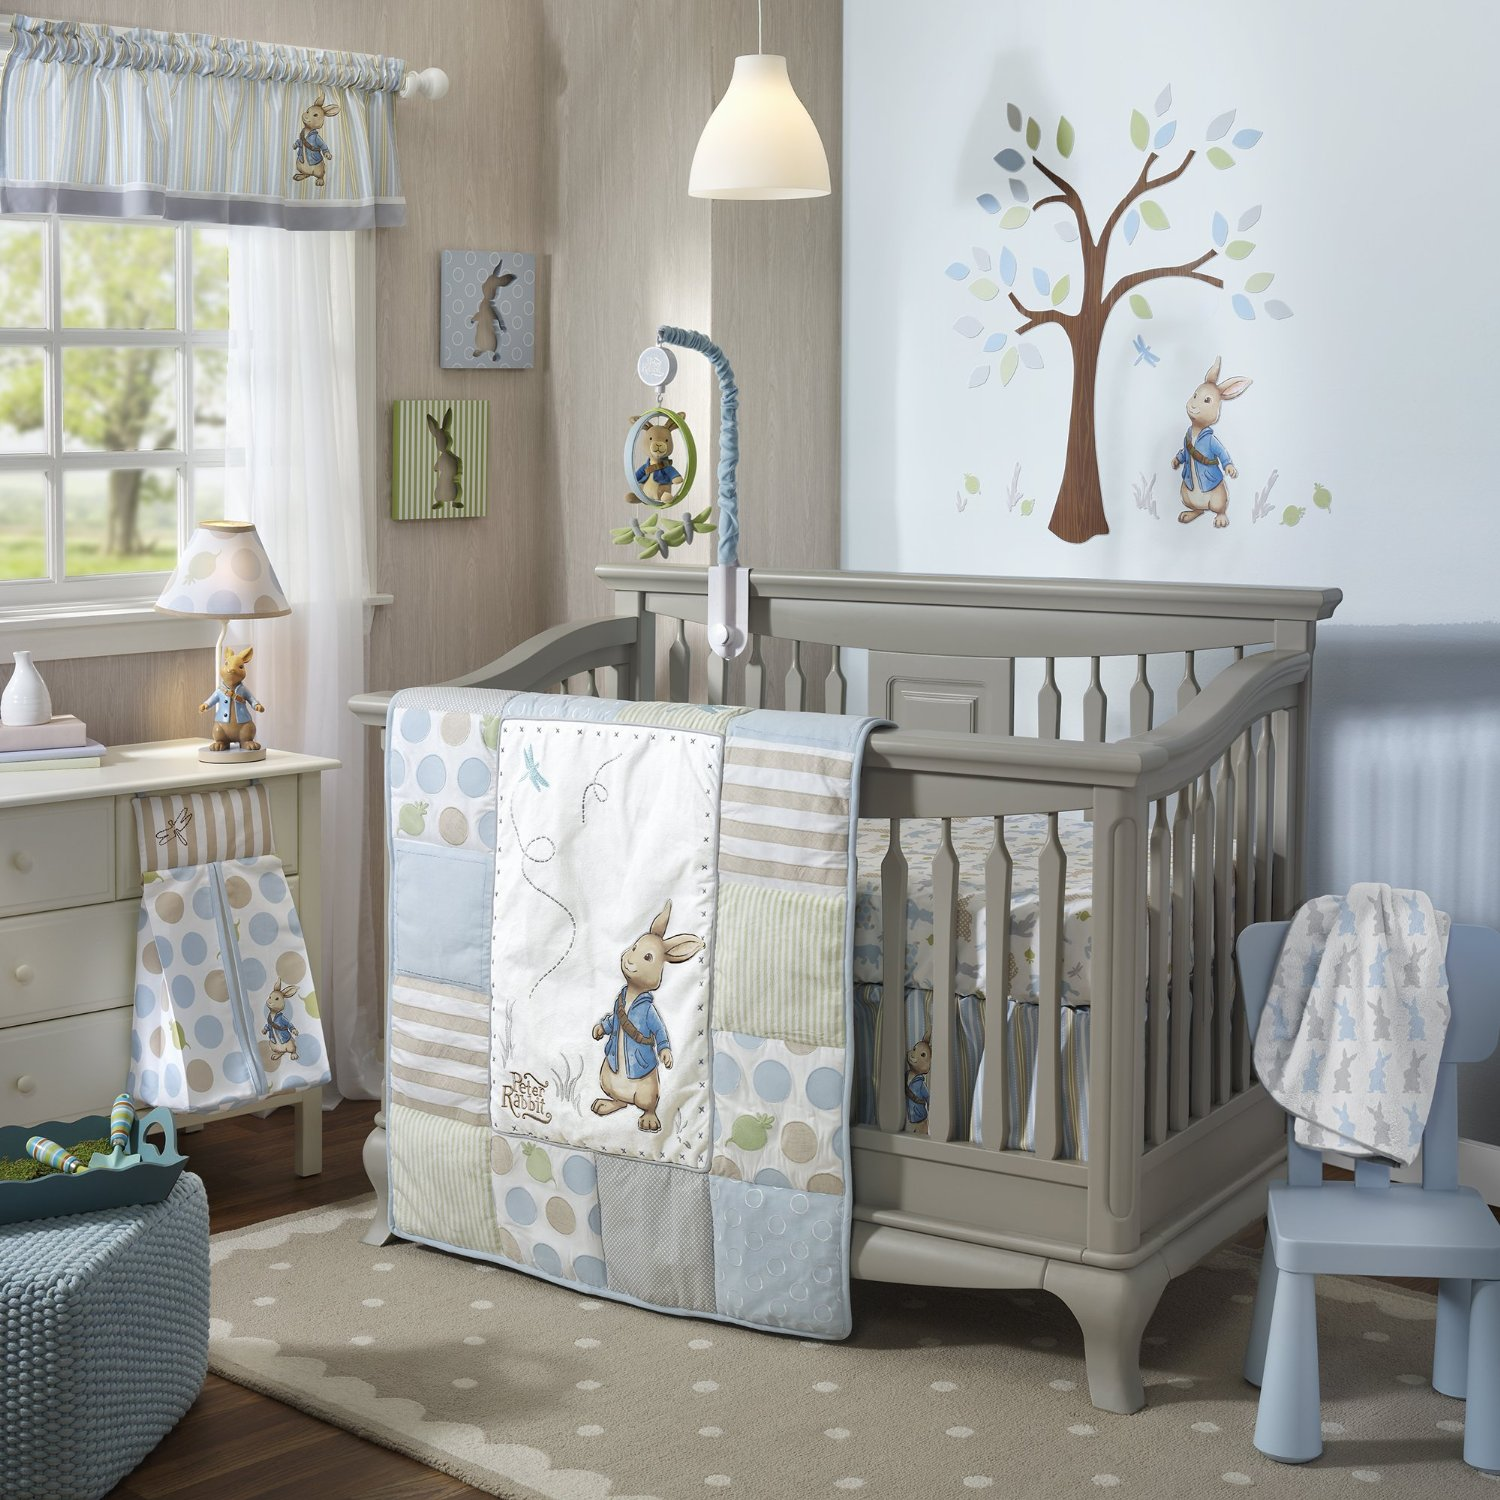 Lambs And Ivy Peter Rabbit Baby Bedding Decor